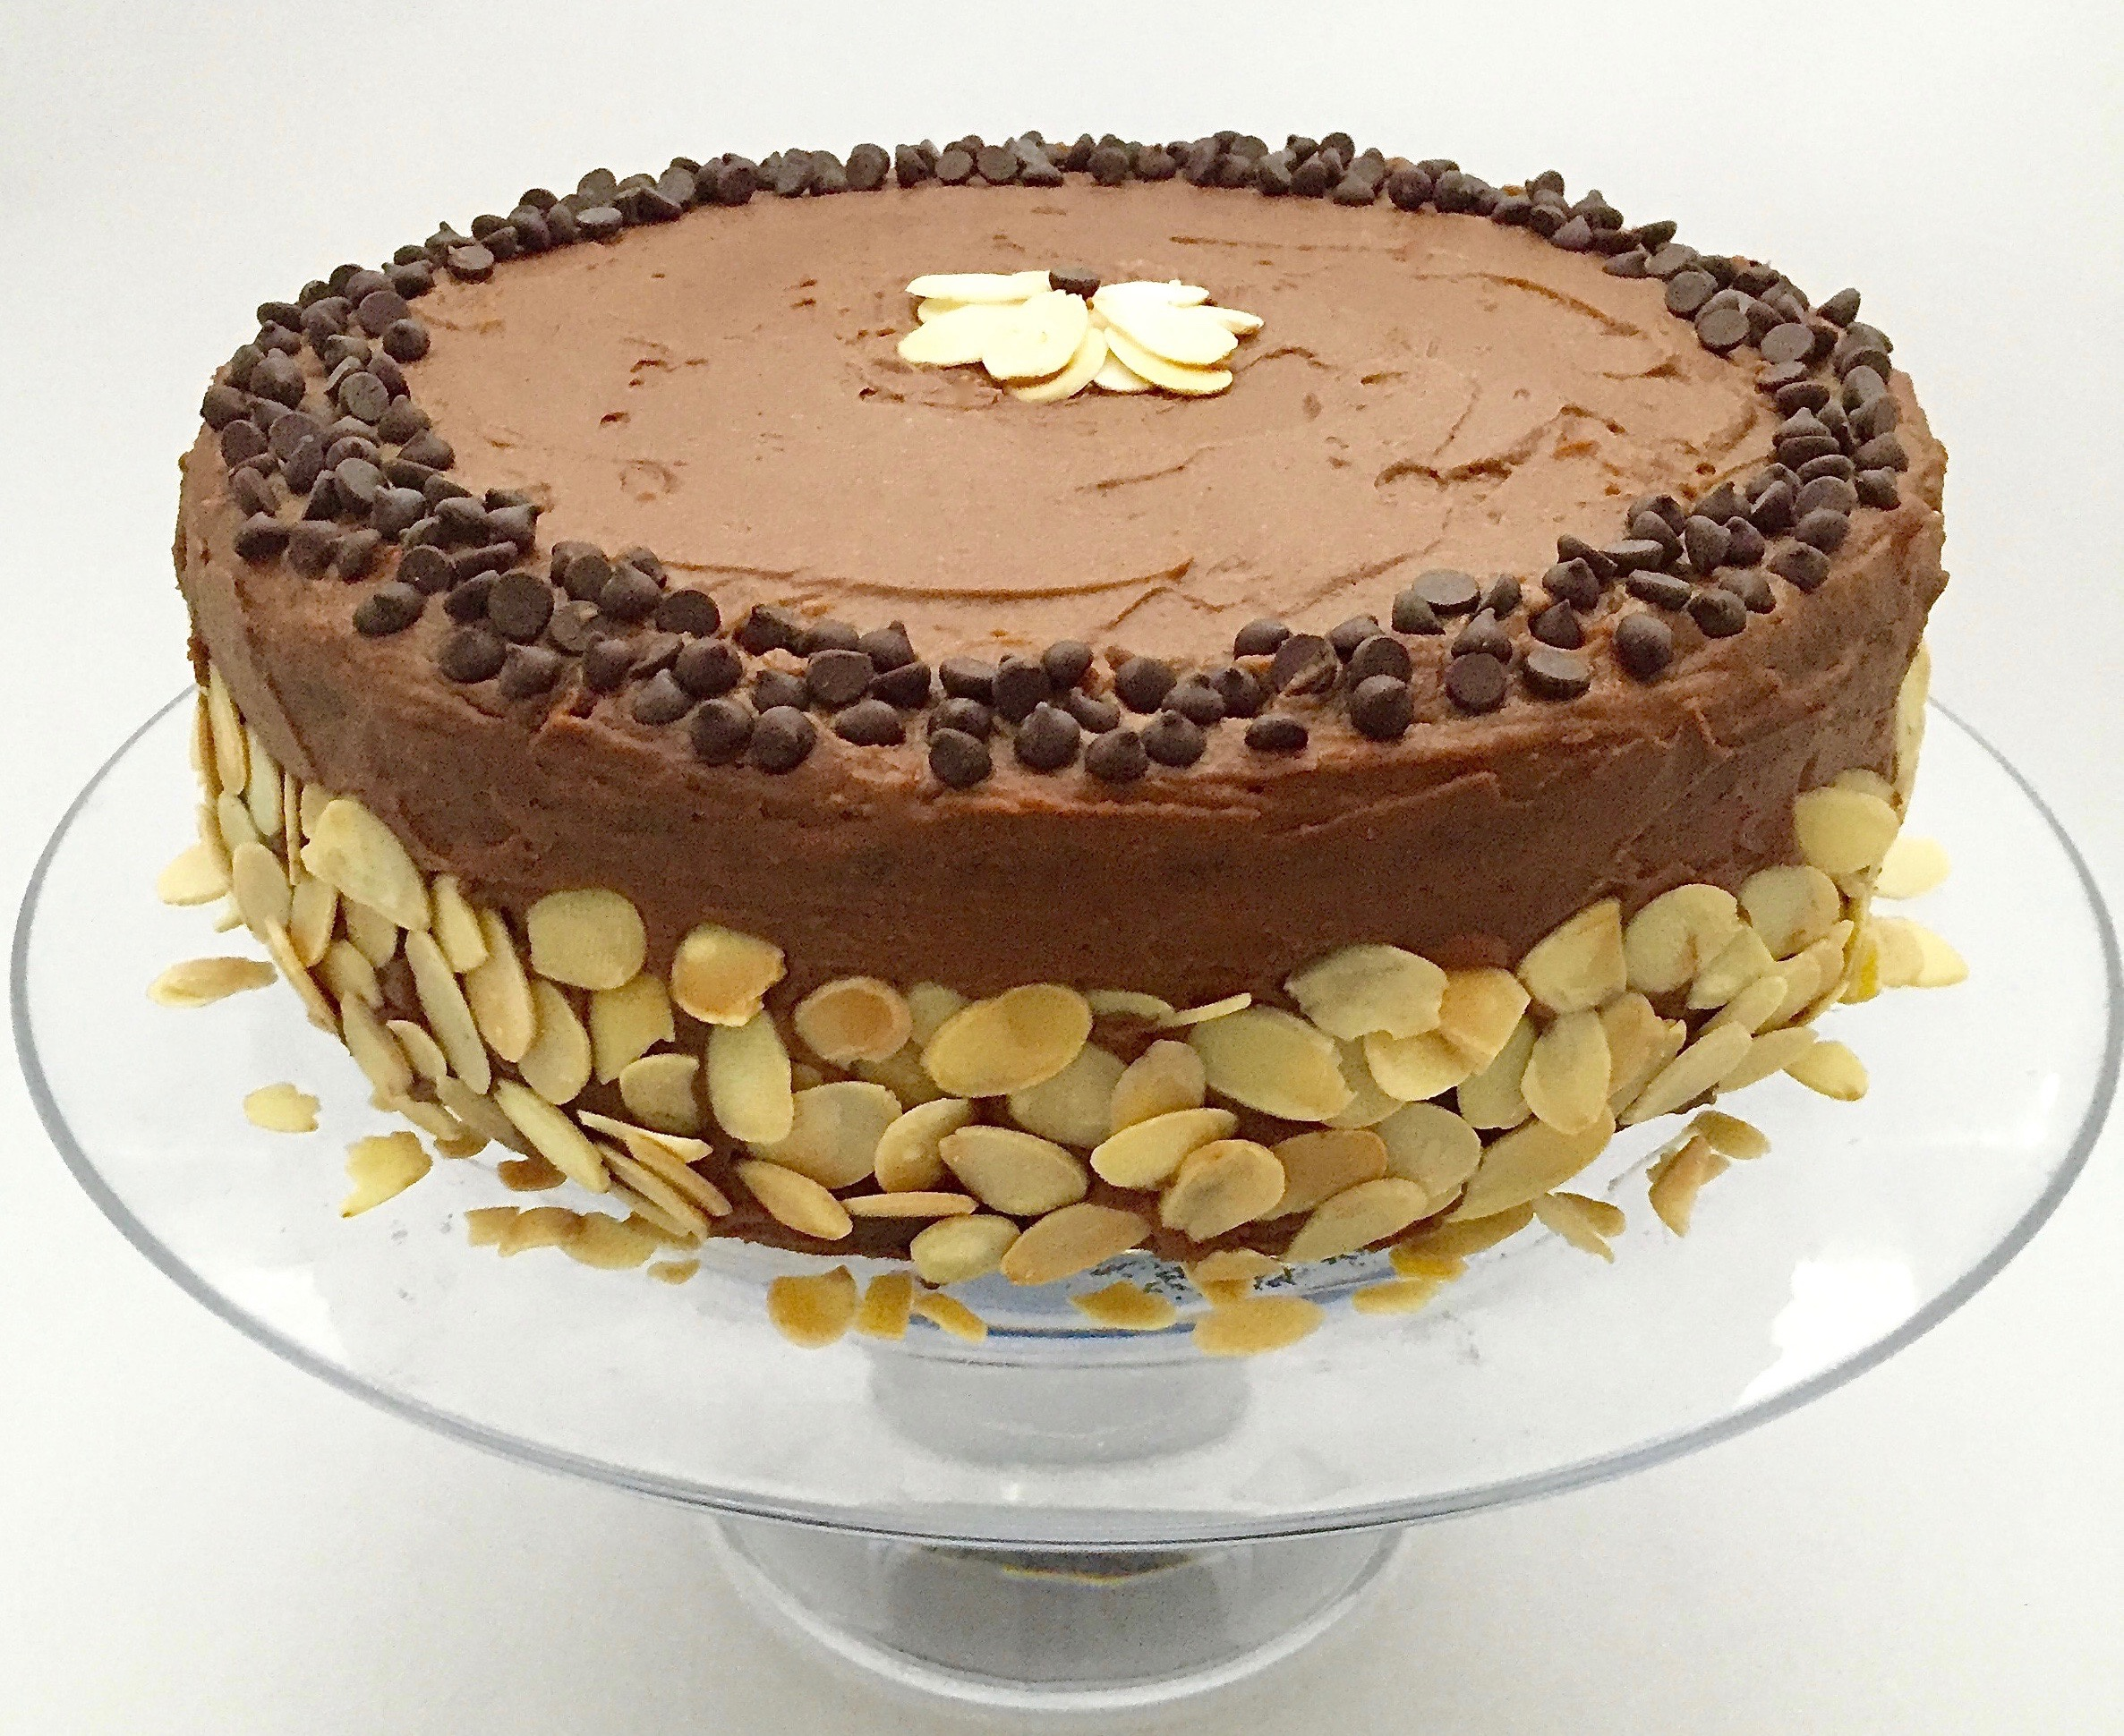 Can You Replace Milk With Chocolate Milk In Cake Recipe